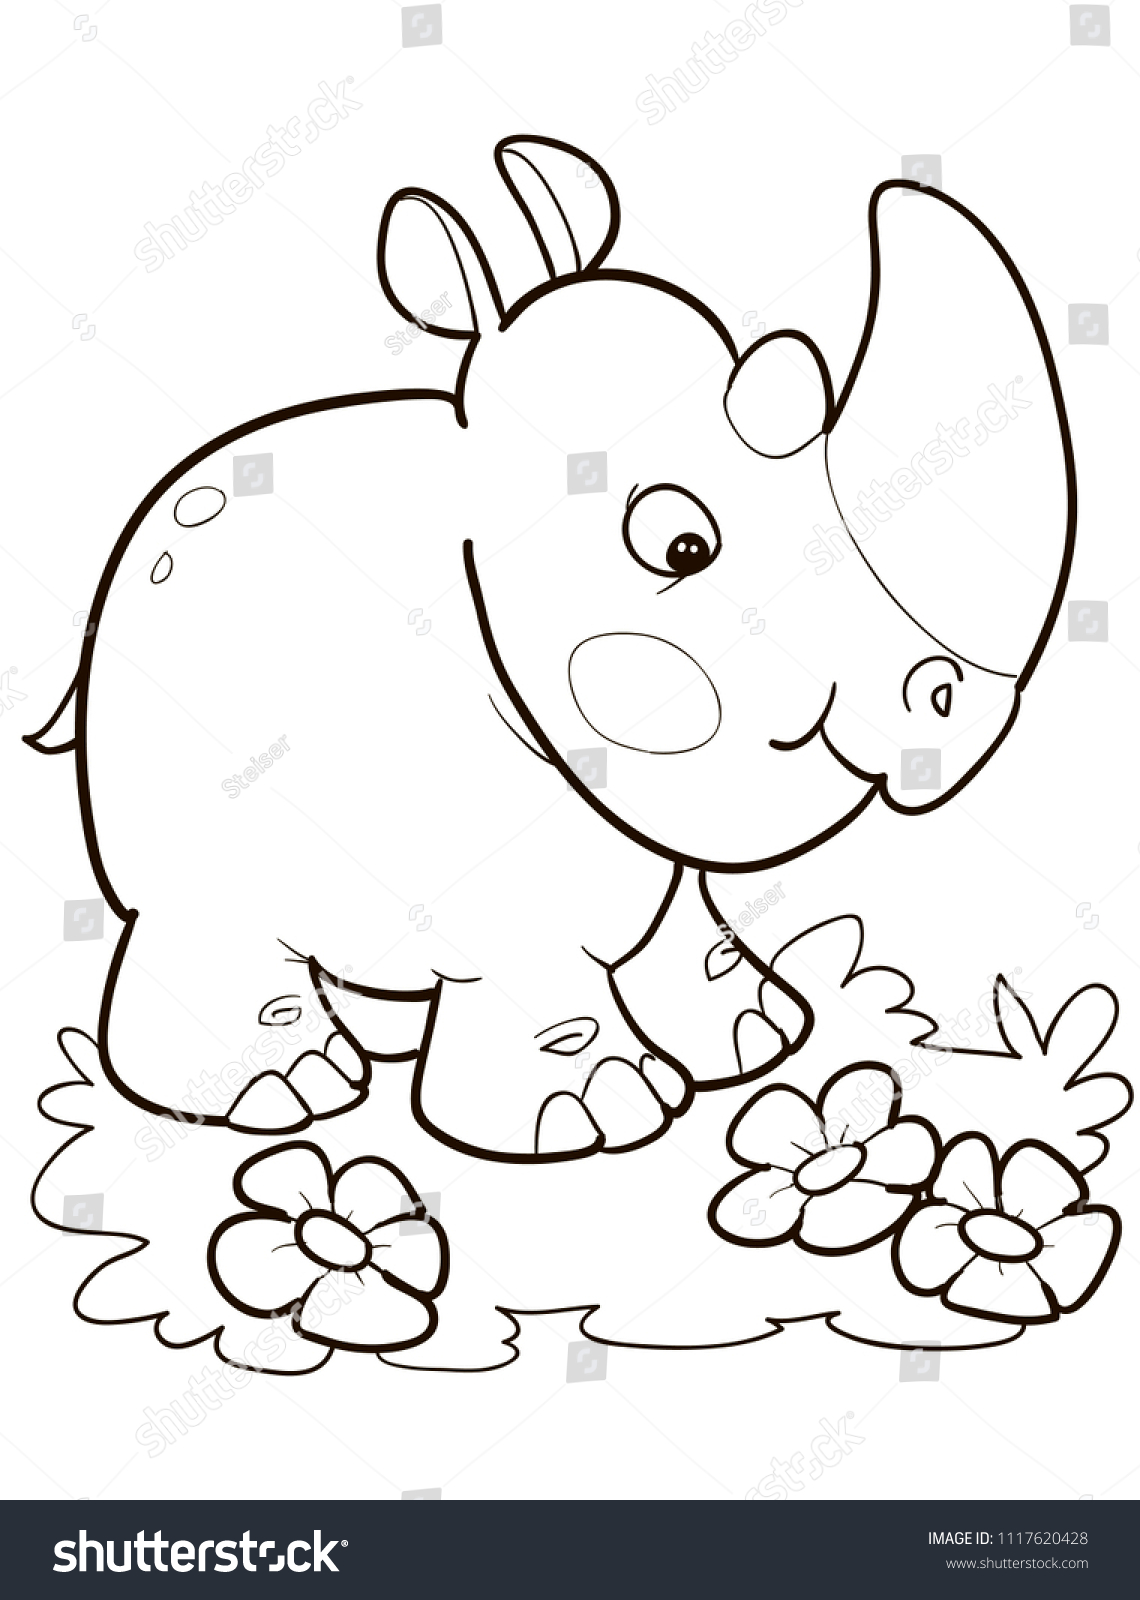 Coloring Page Outline Cartoon Cute Rhino Stock Vector 1117620428 ...